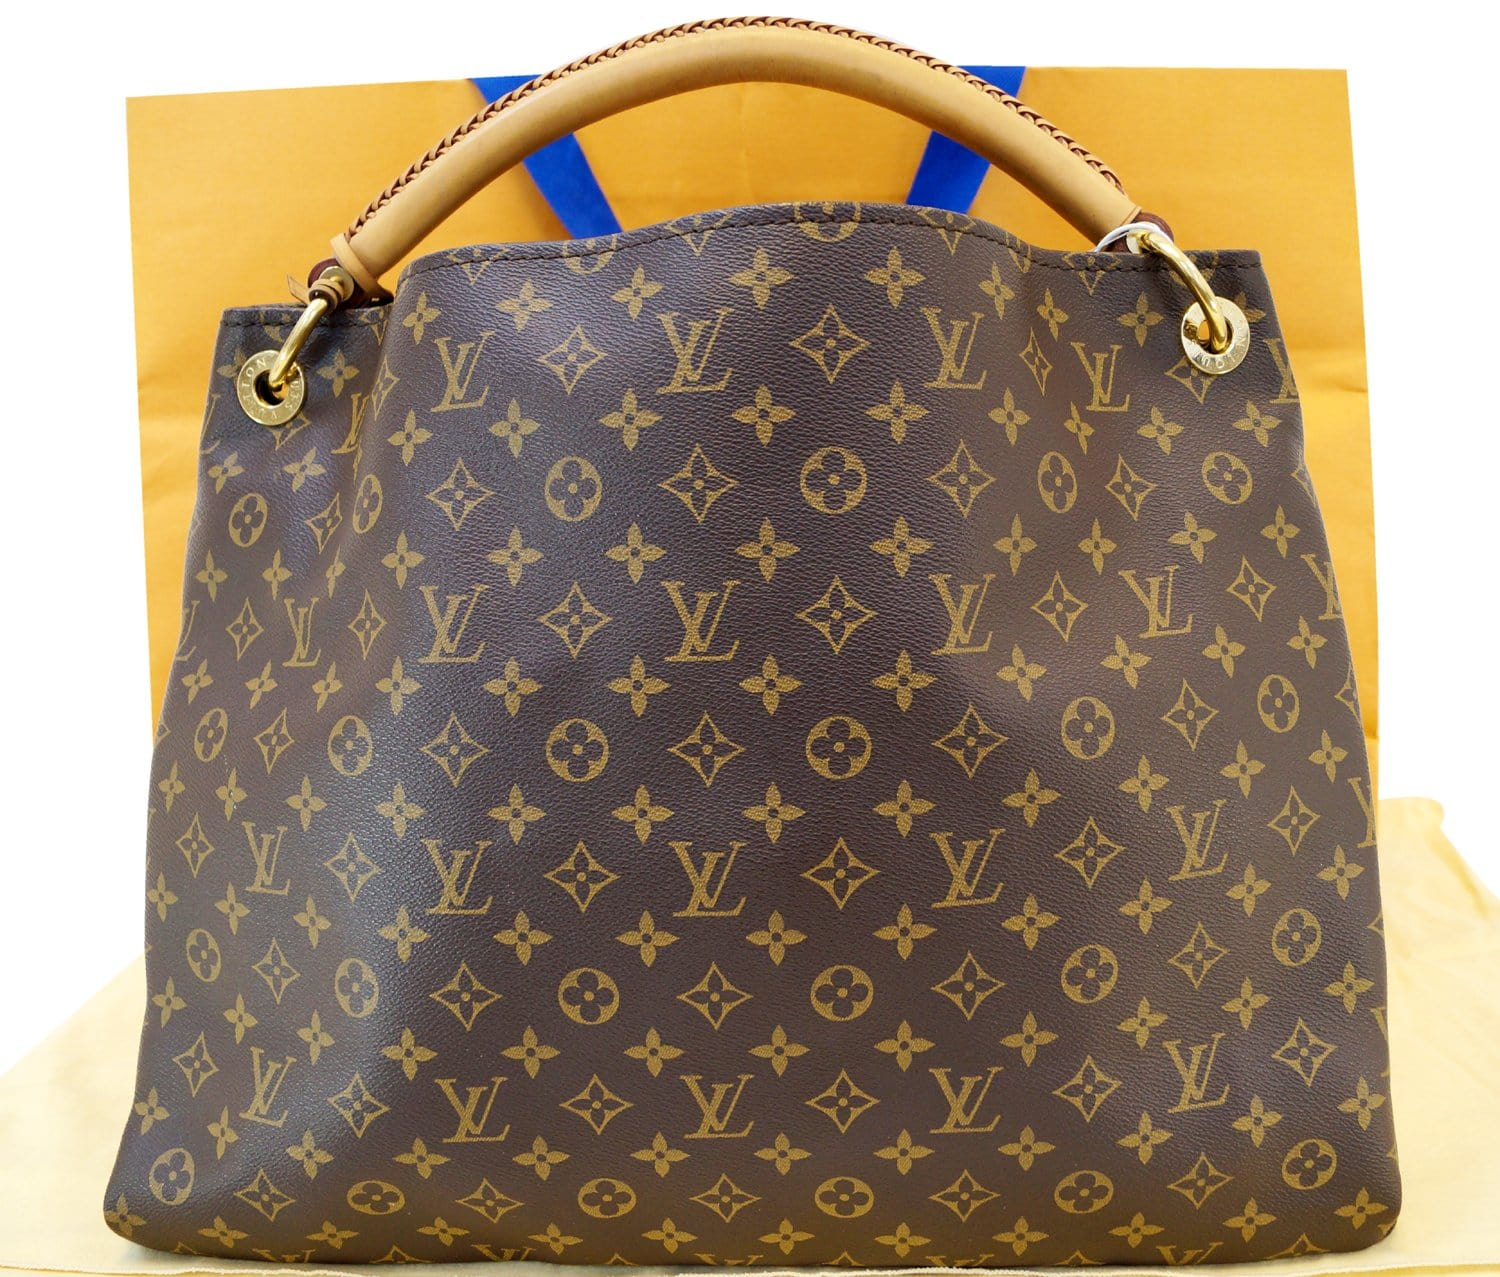 f4ea50cf915a Authentic LOUIS VUITTON Monogram Artsy GM Tote Hobo Handbag Limited E3198